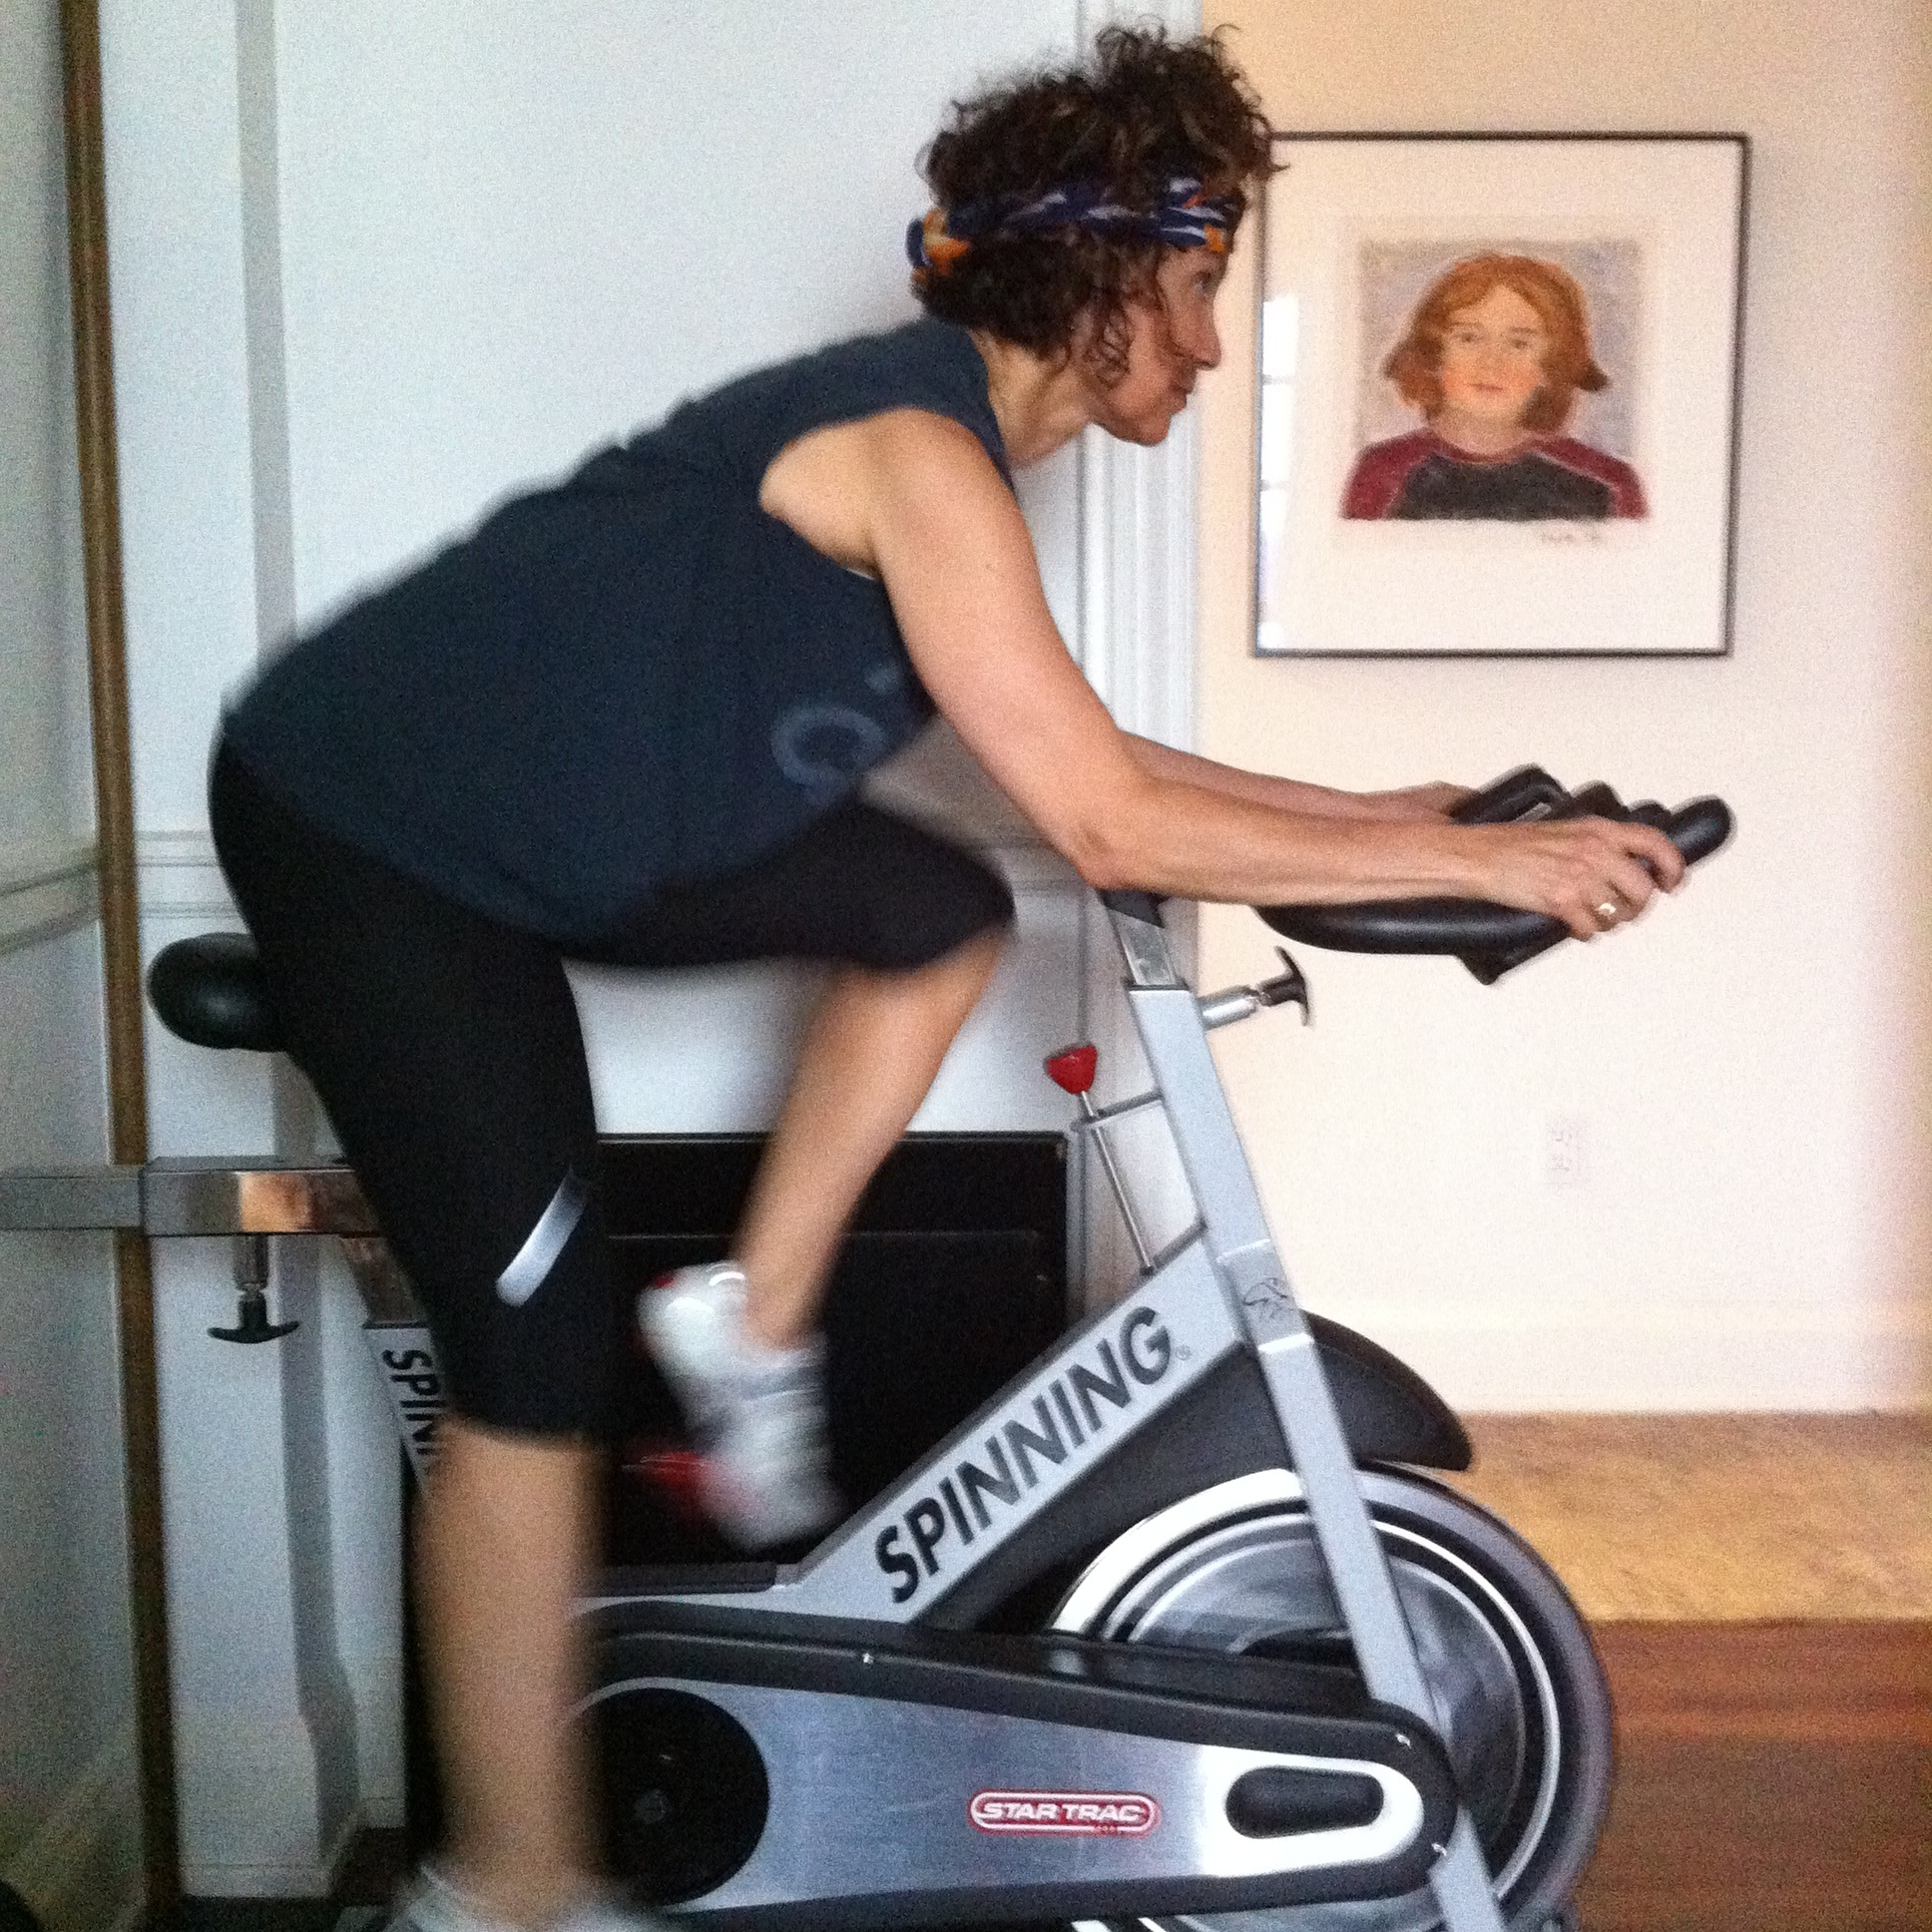 Will Spinning Cause Bulky Quads? - by abbie galvin